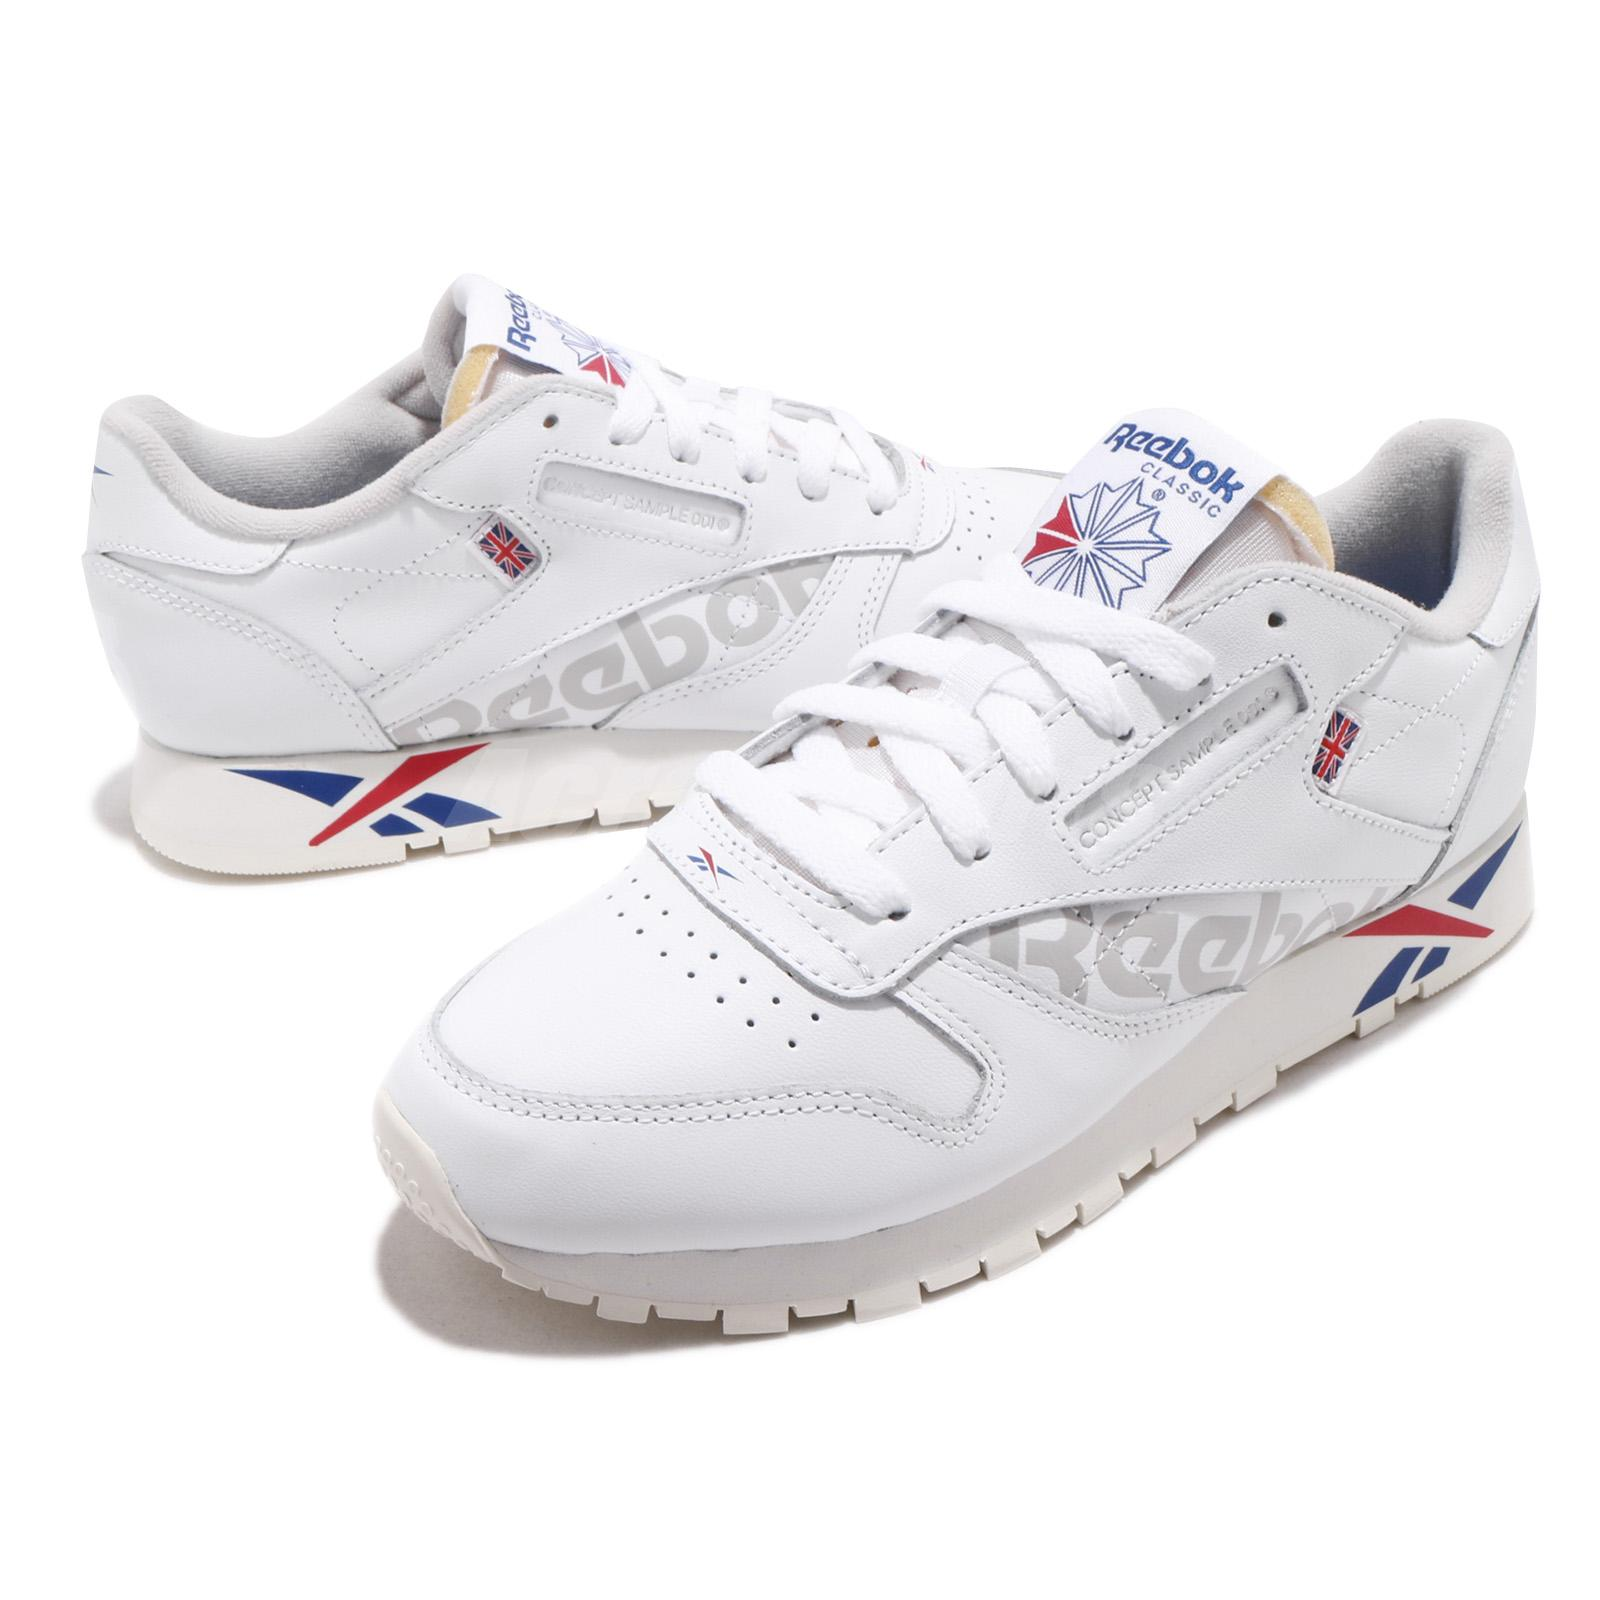 3928c68b682d9 Details about Reebok Classic Leather Altered MU White Dark Royal Red Grey Men  Shoes DV4629